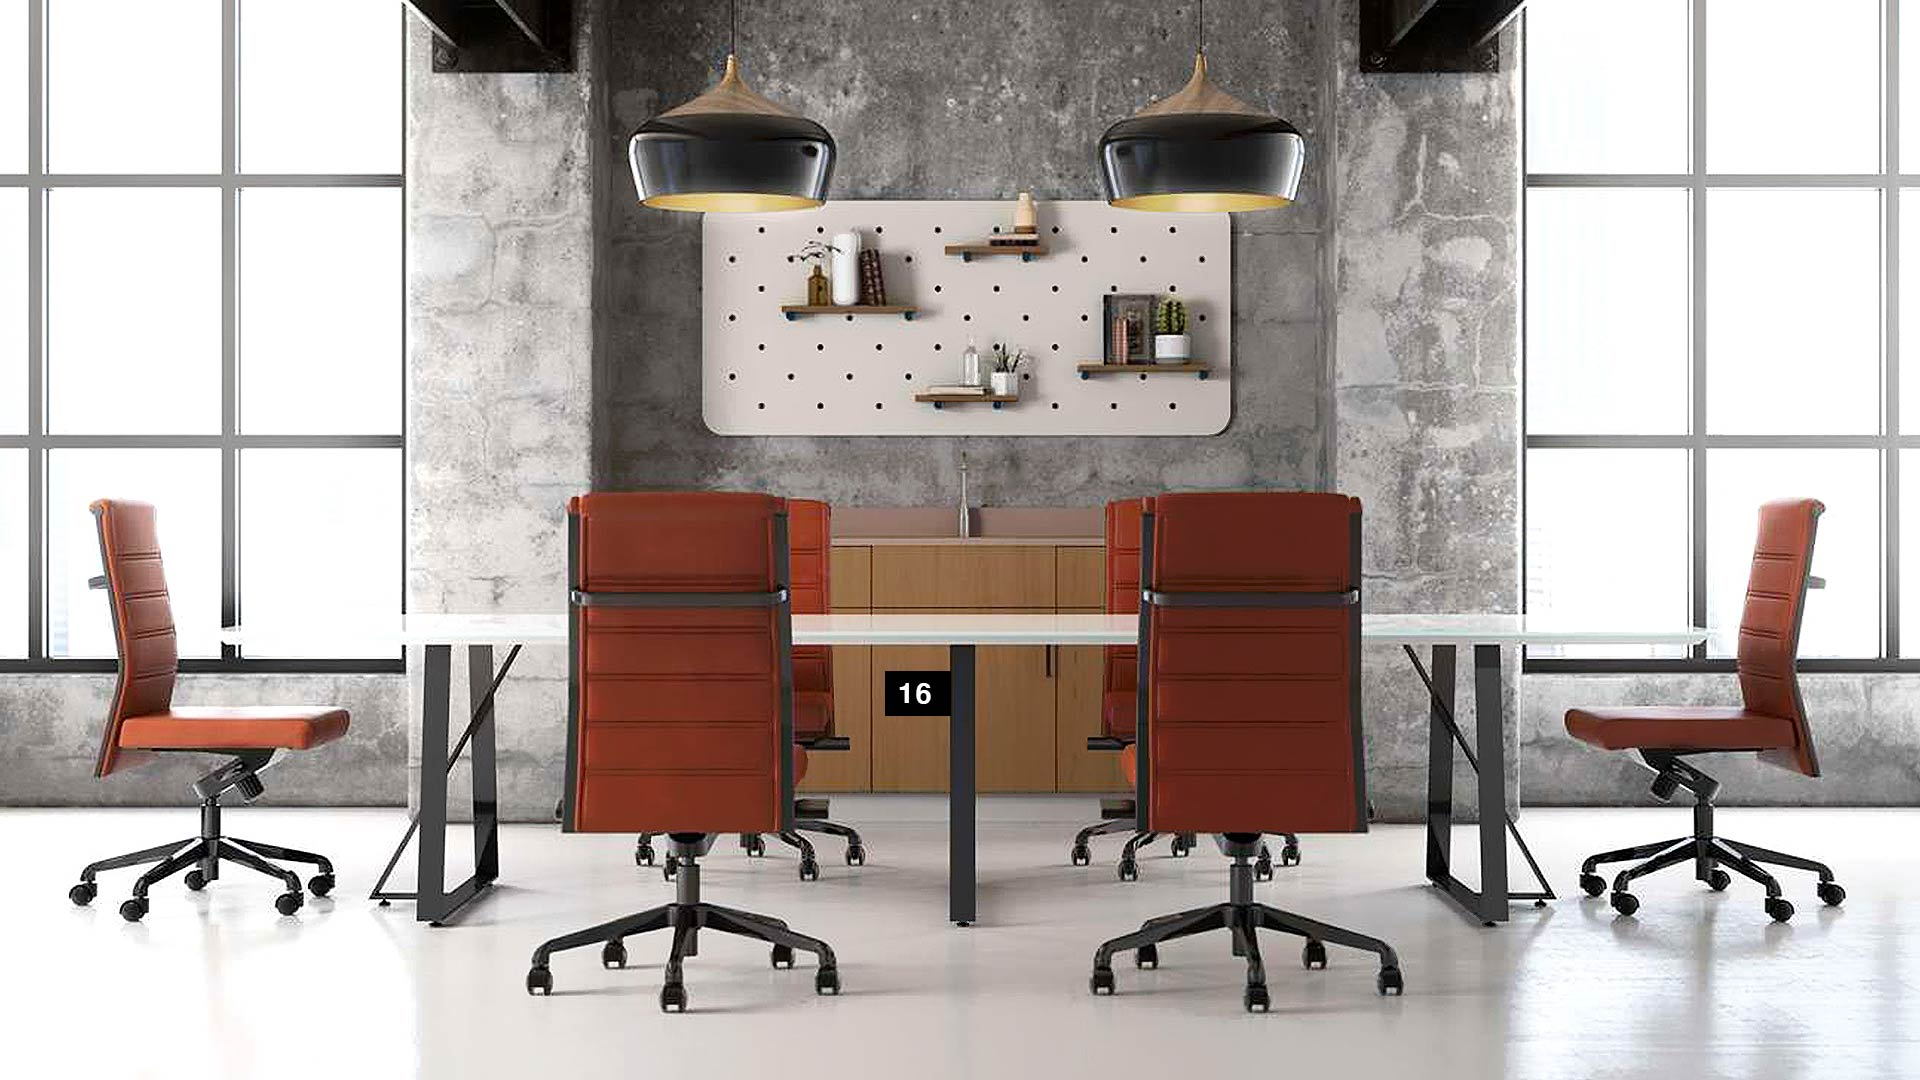 abstract-modern-furniture-ofs-intermix-conference-2